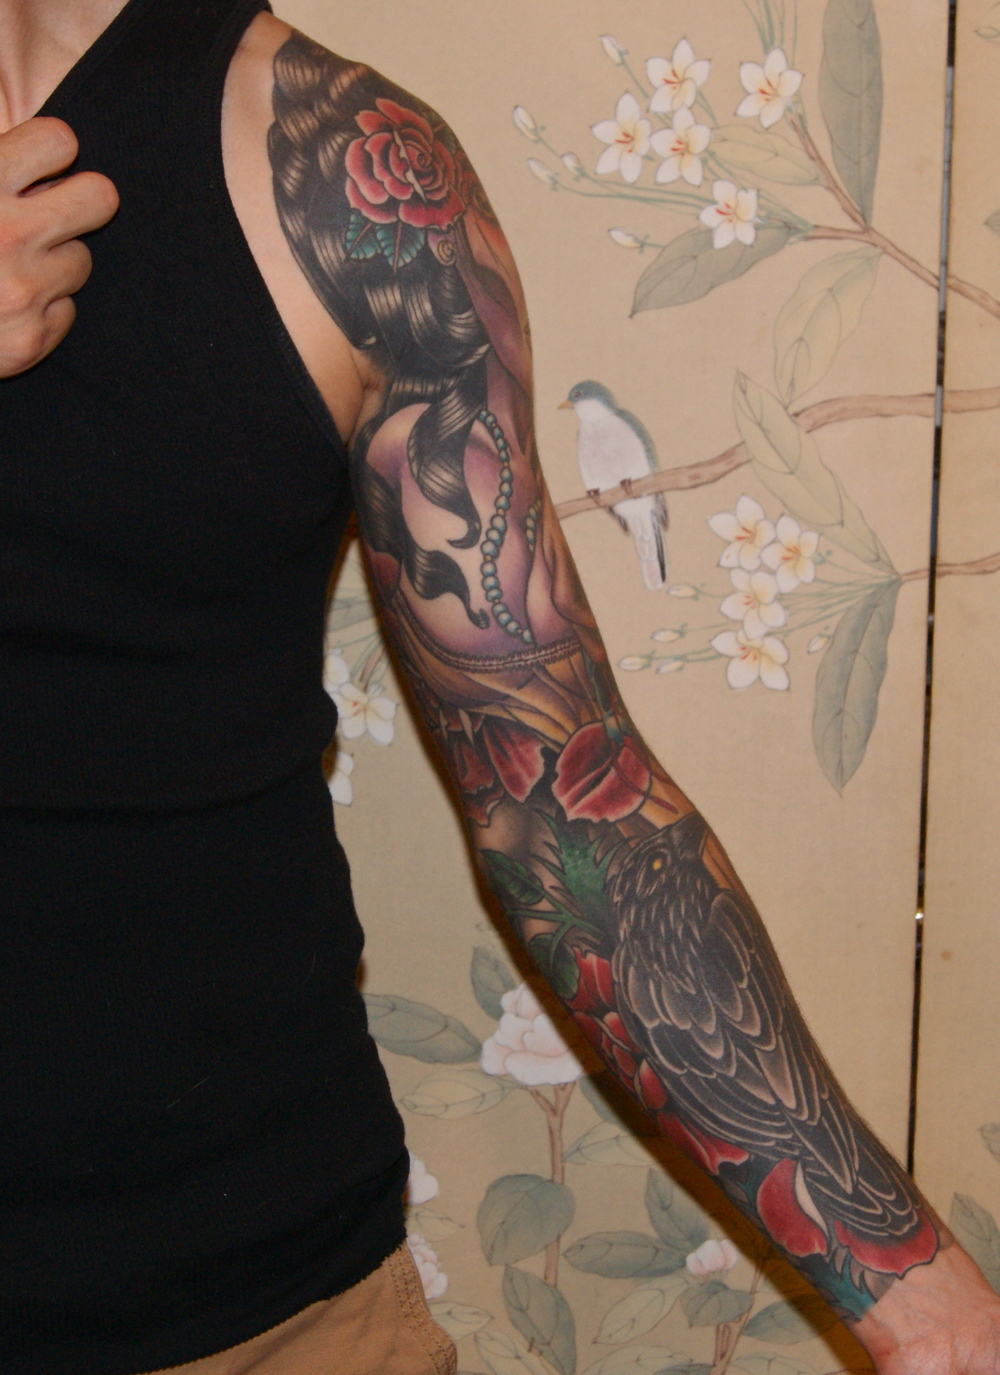 Dead Girl Skull Roses sleeve tattoo 2